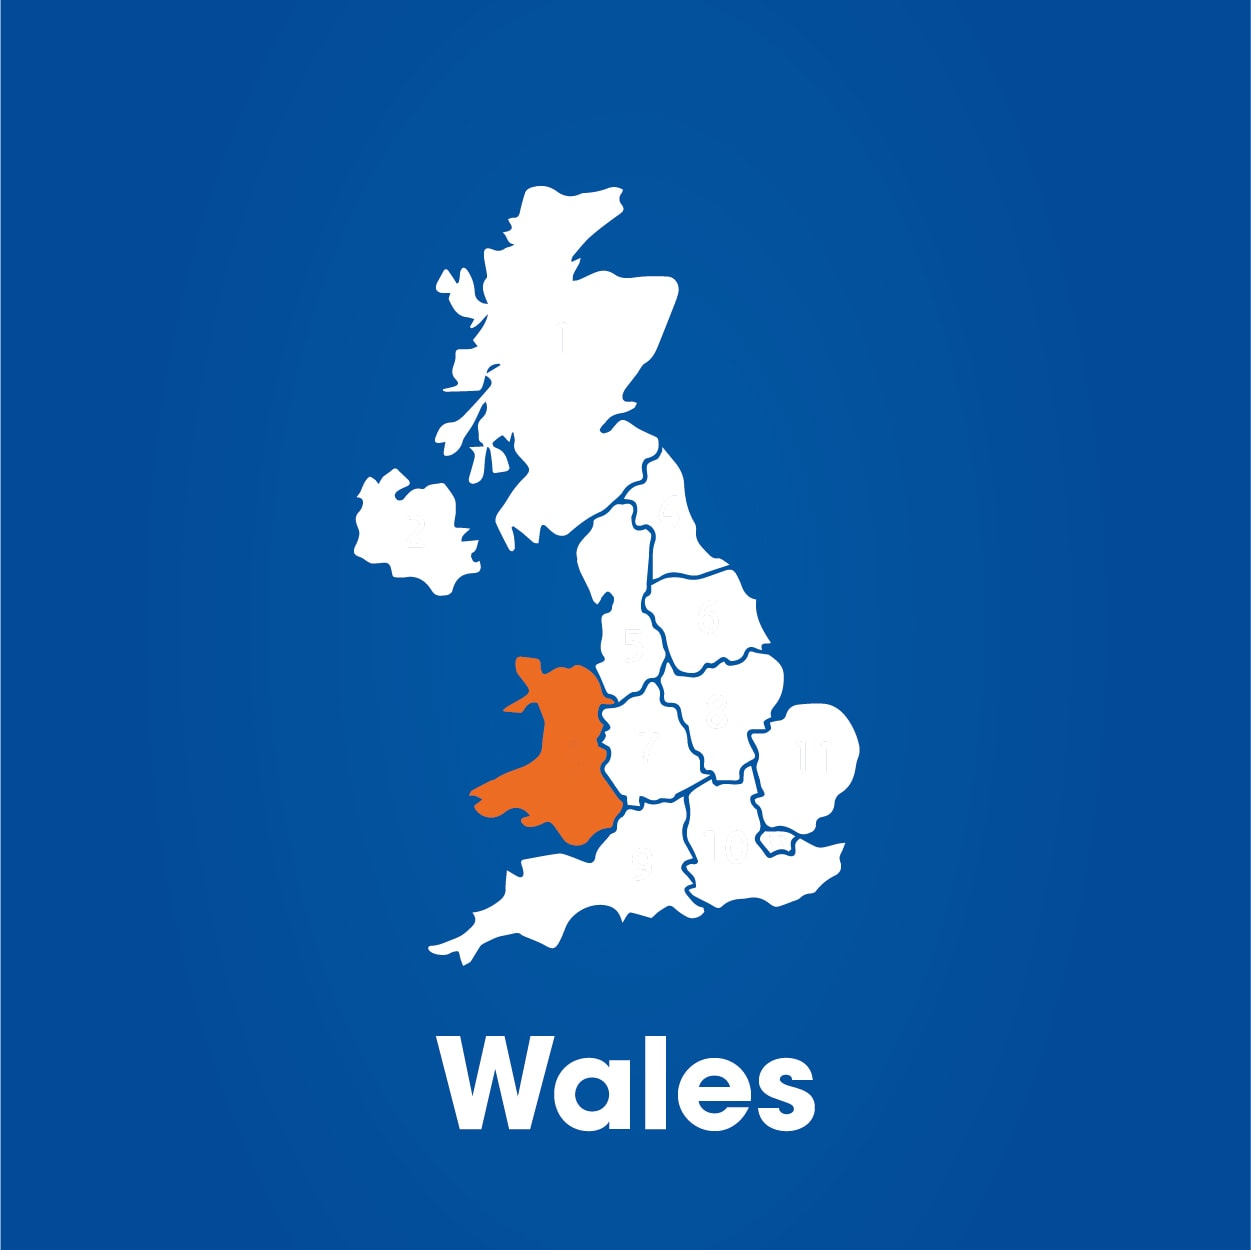 wales highlighted on map of UK